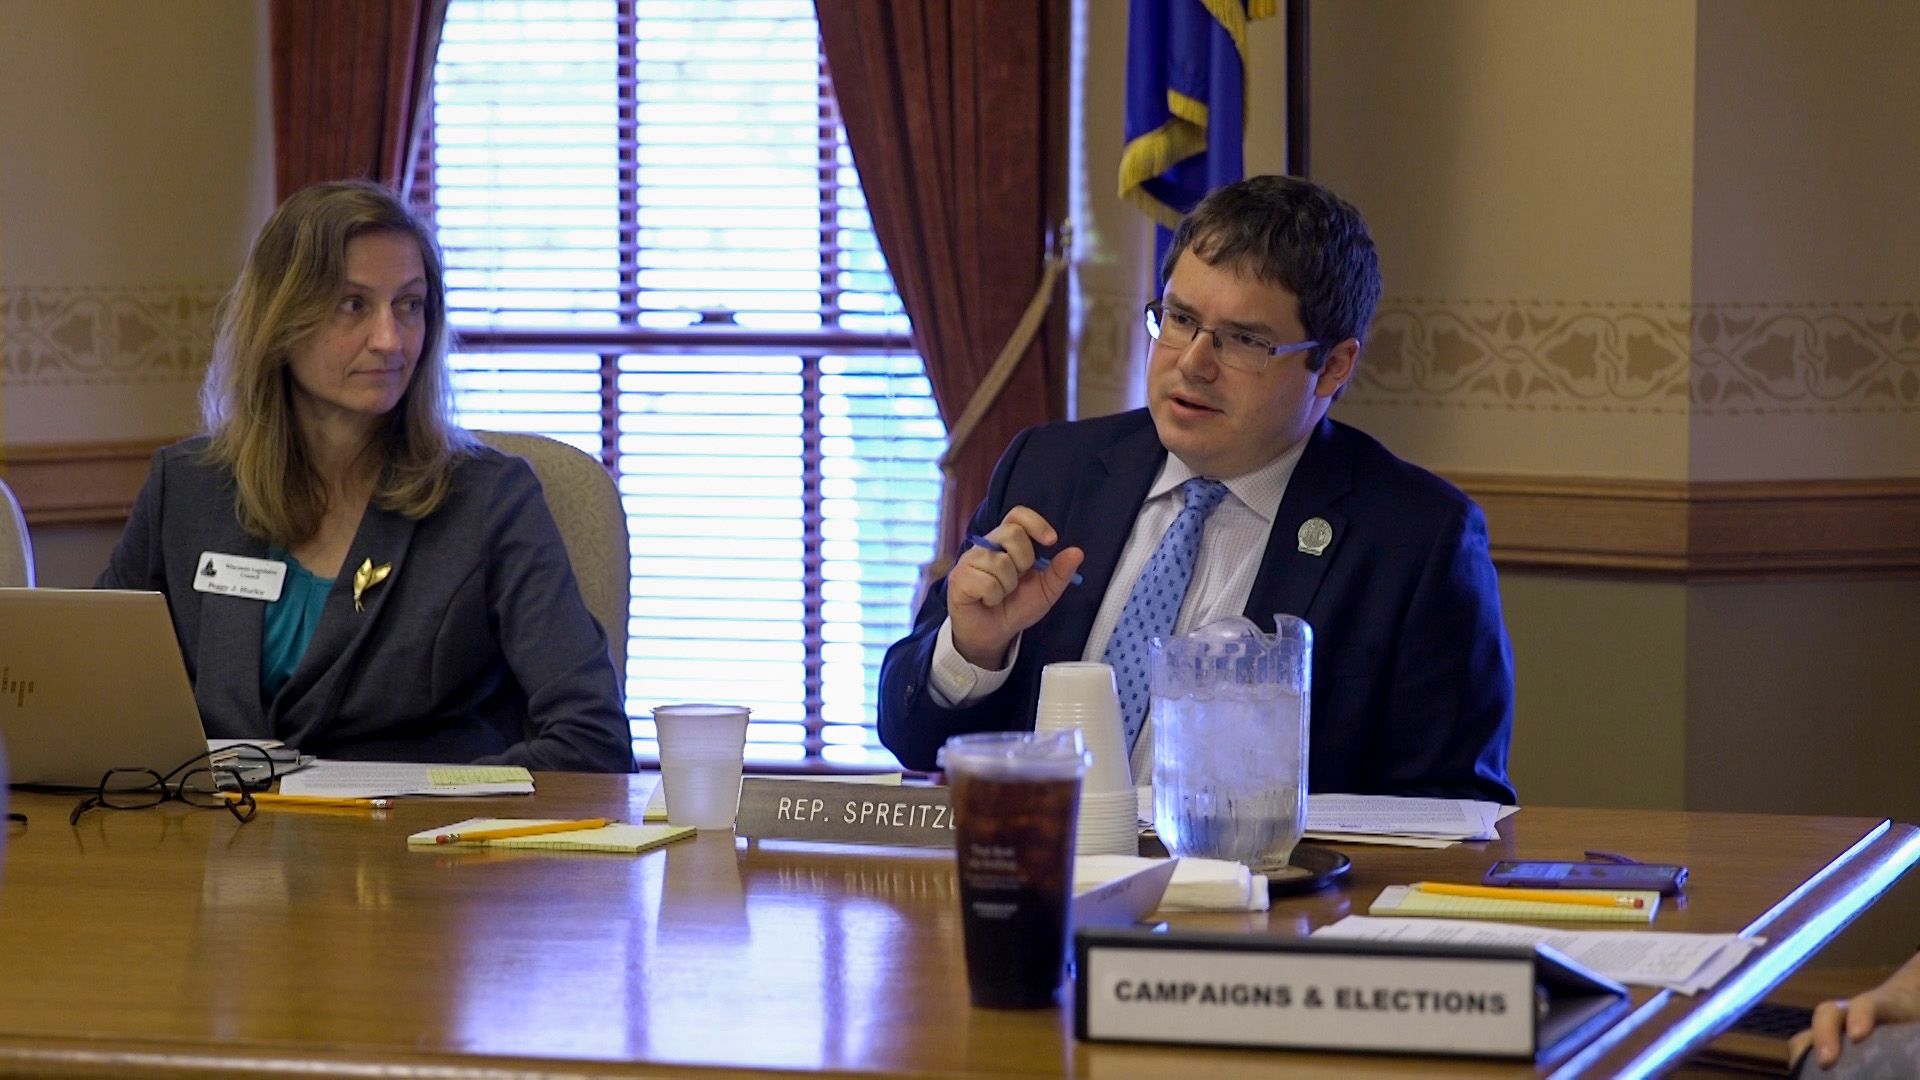 Rep. Mark Spreitzer speaks at a table at the Wisconsin Capitol